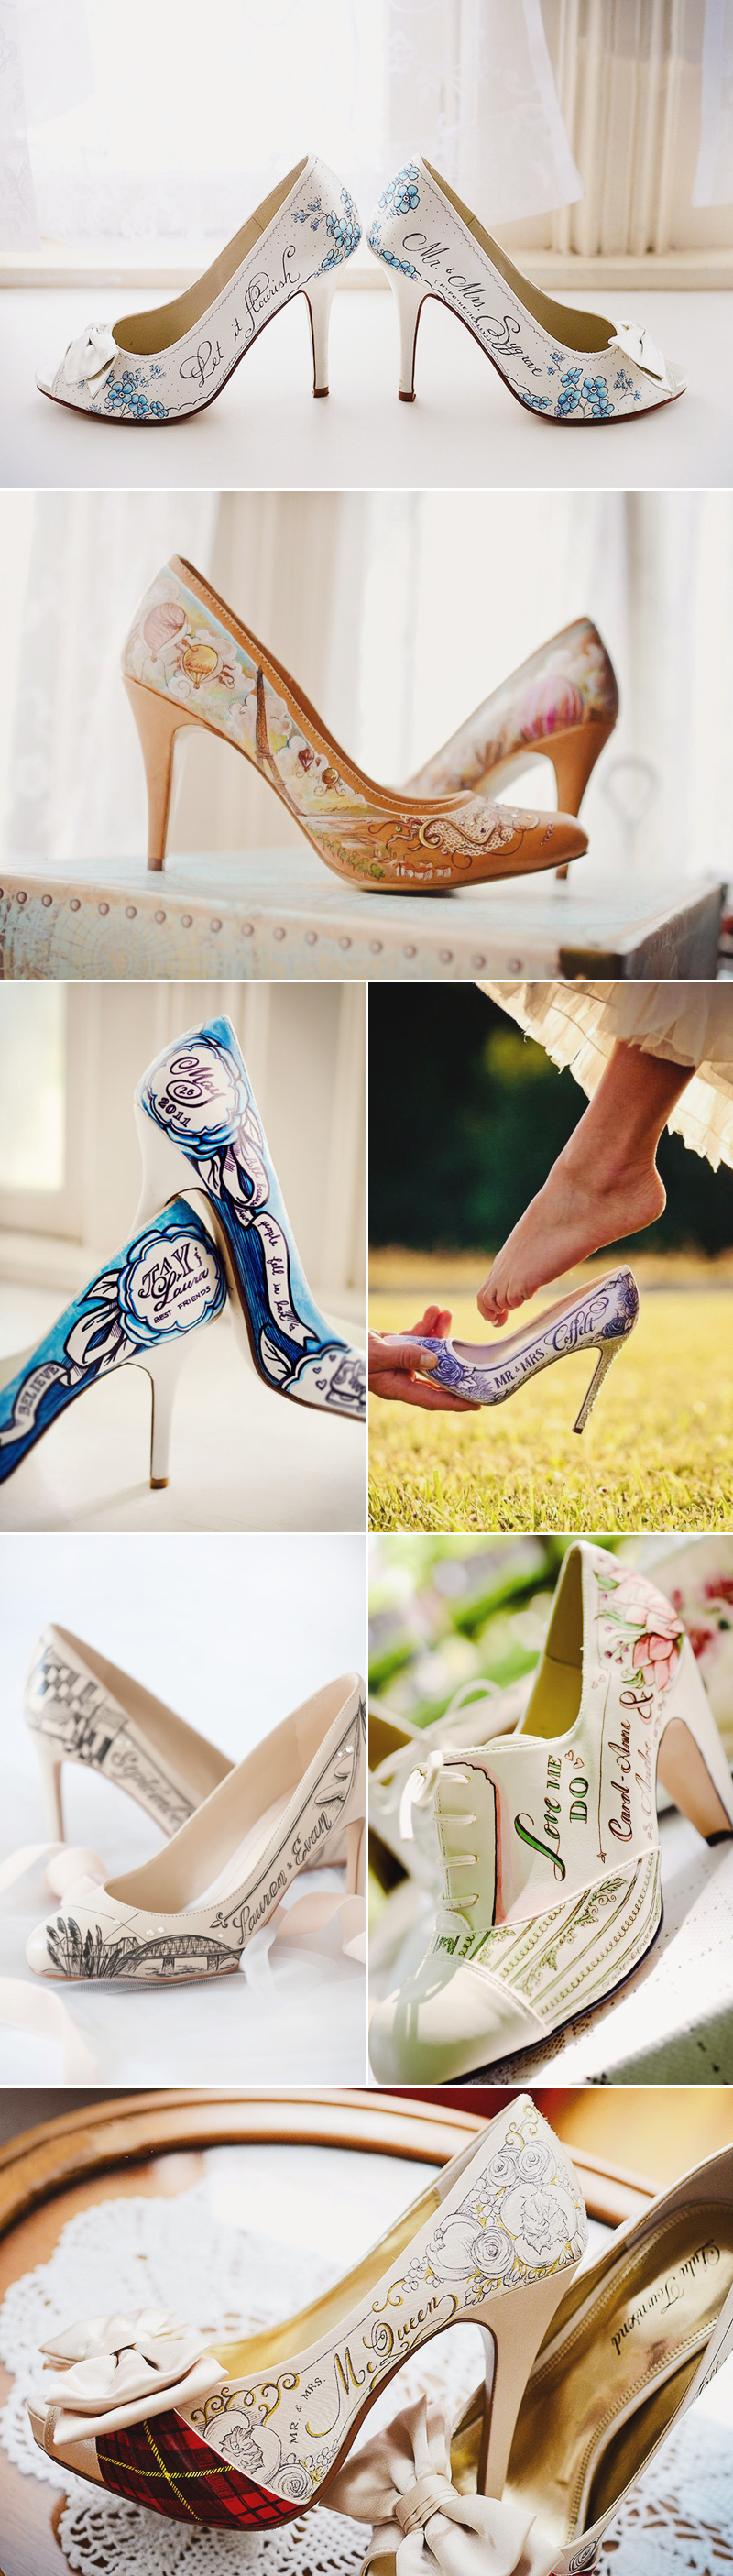 d53dc8643bc3 Design Your Own Wedding Shoes! 23 One-of-a-kind Custom Handmade ...